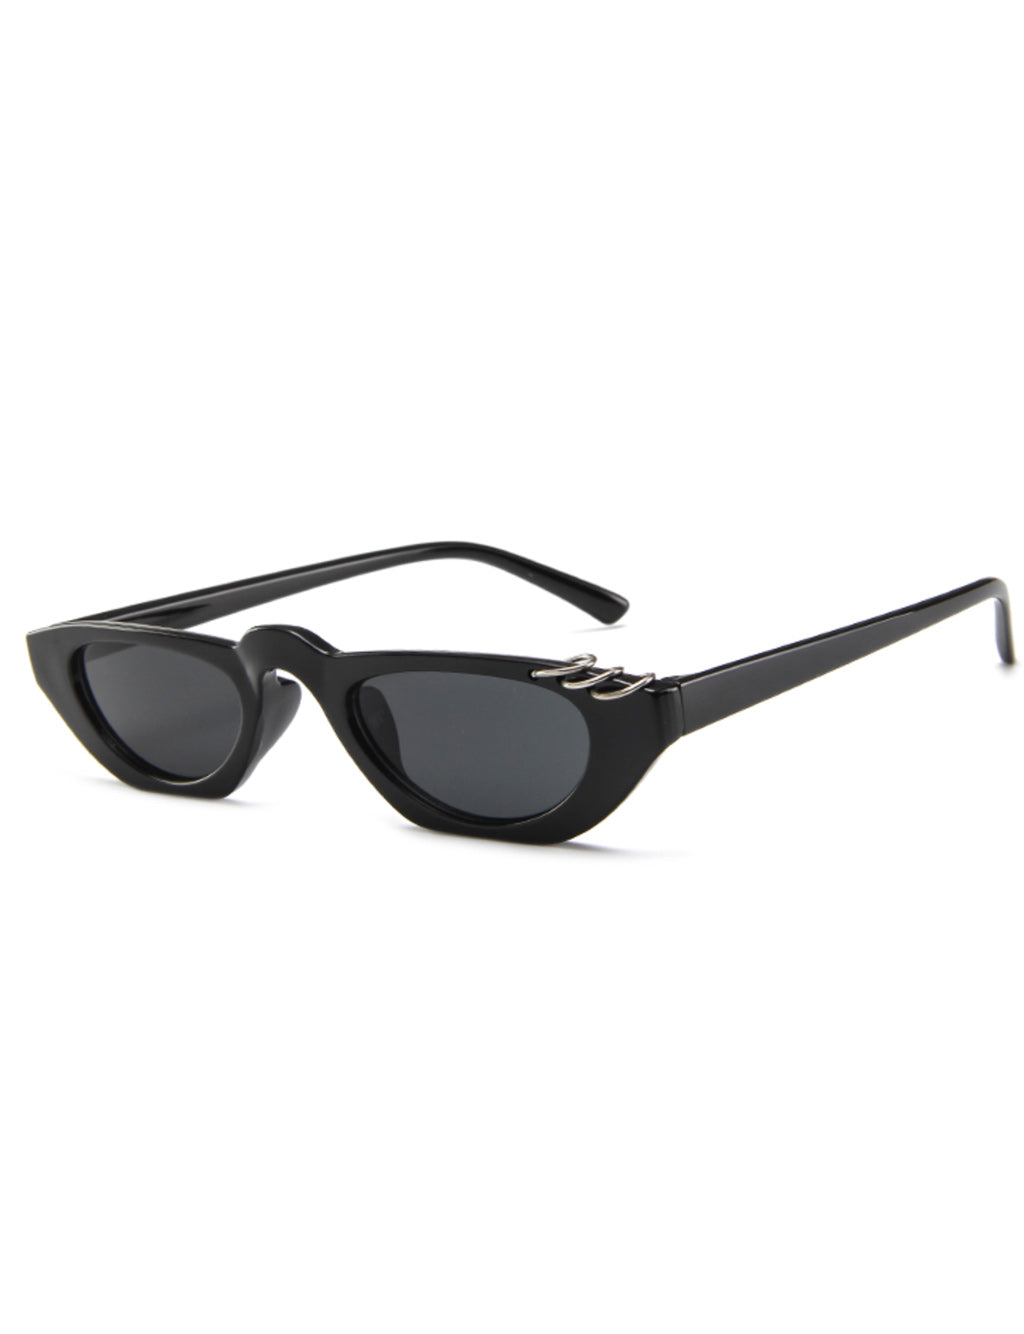 FIRST DATE SHADES - BLACK